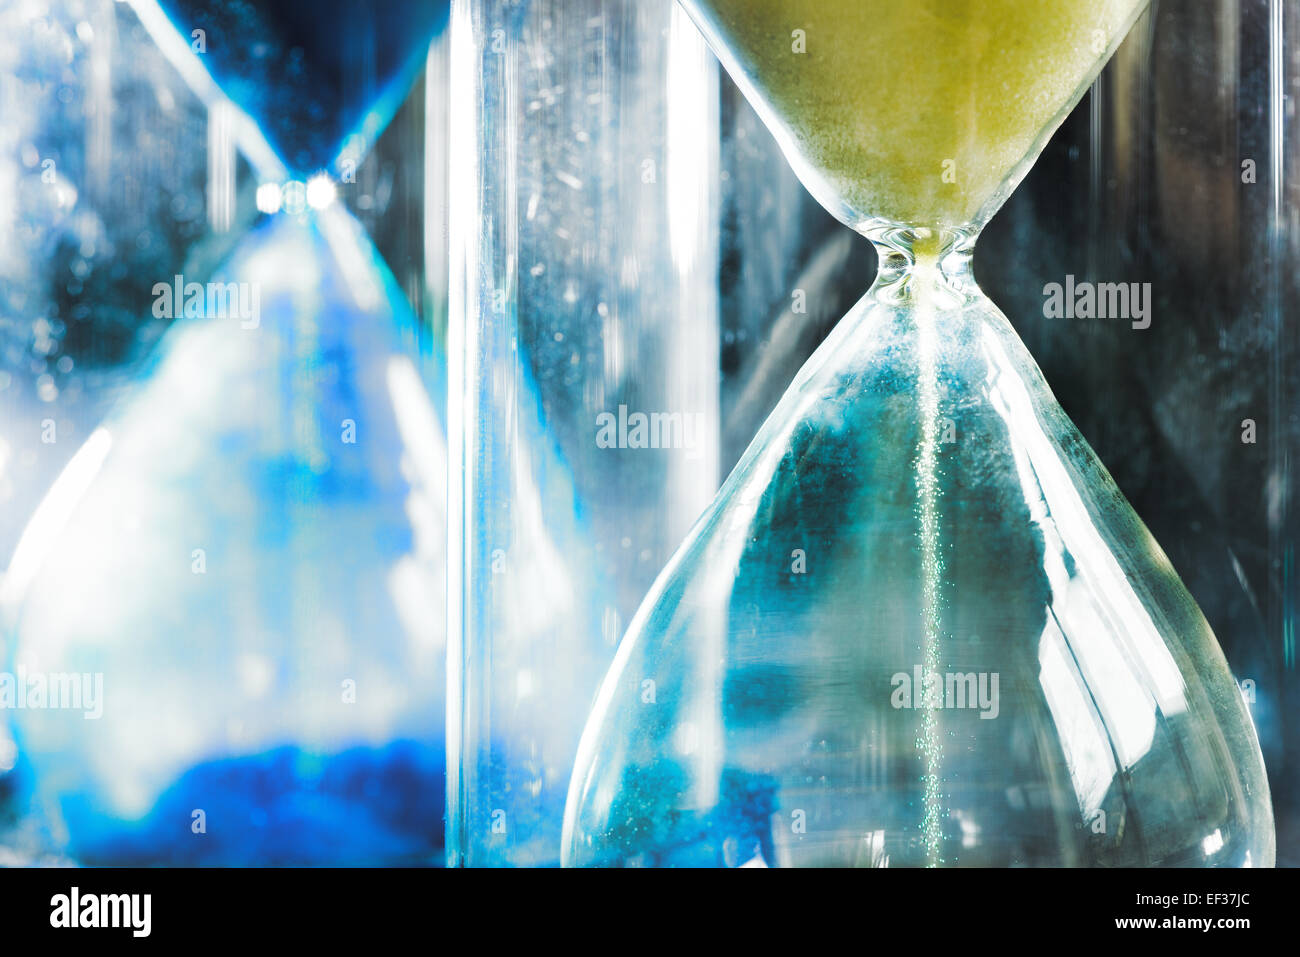 timer hourglass streaming grains of sand flowing through depicting things are running out - Stock Image